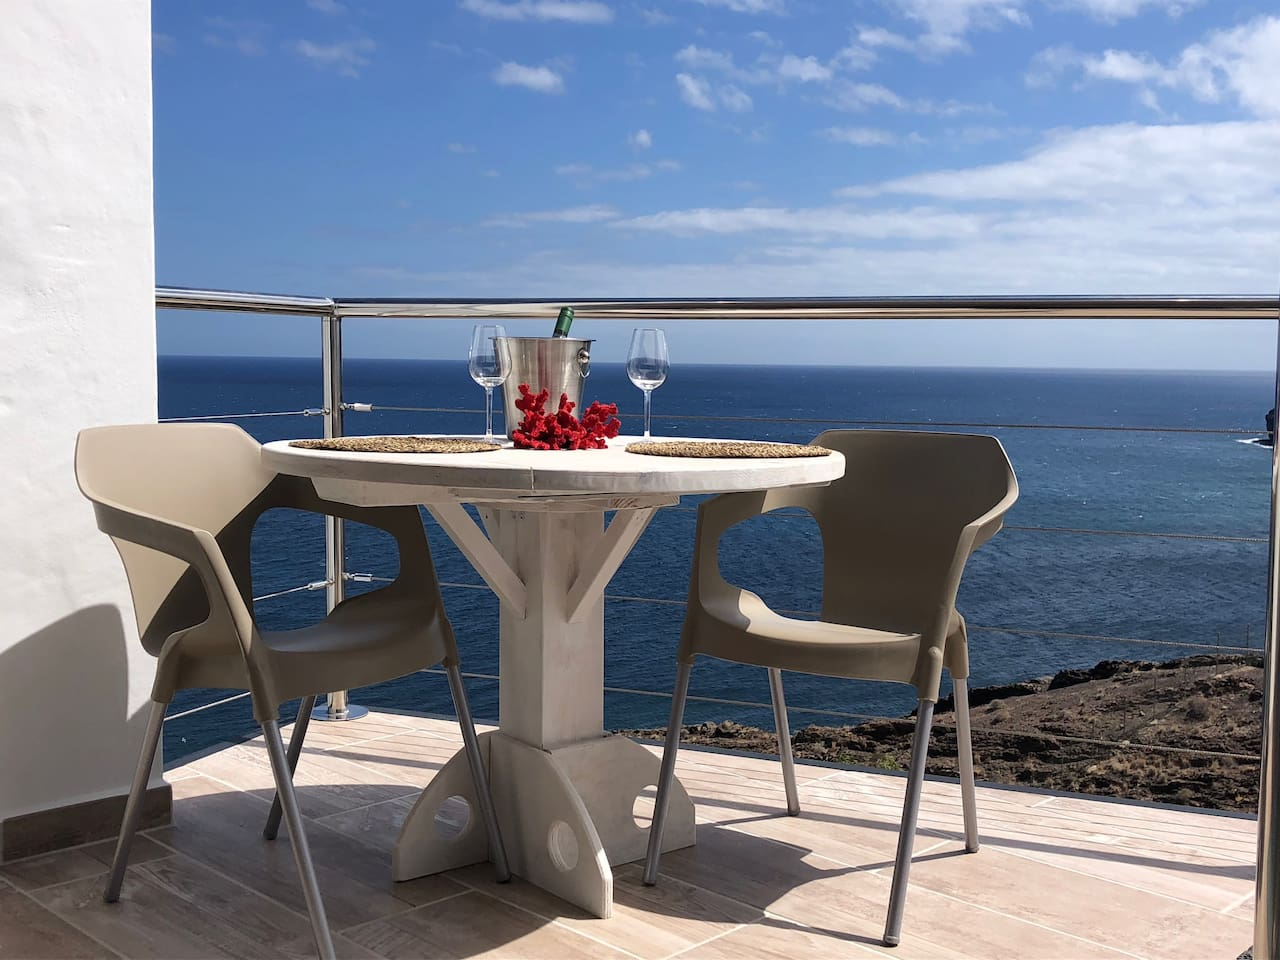 Have a glass of champagne on the spacious terrace and enjoy one of the most stunning views and sunsets of Las Playitas.